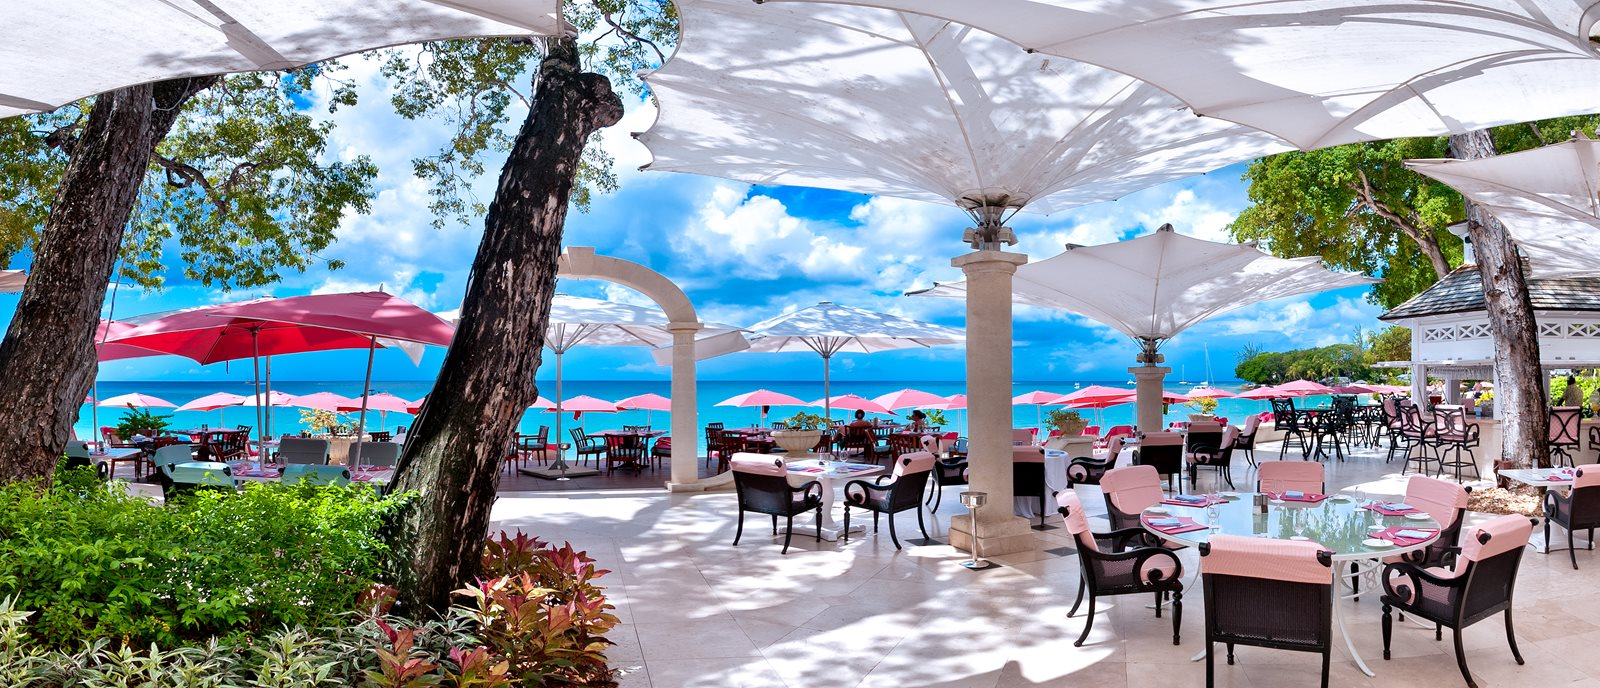 Outdoor Fine Dining in Barbados